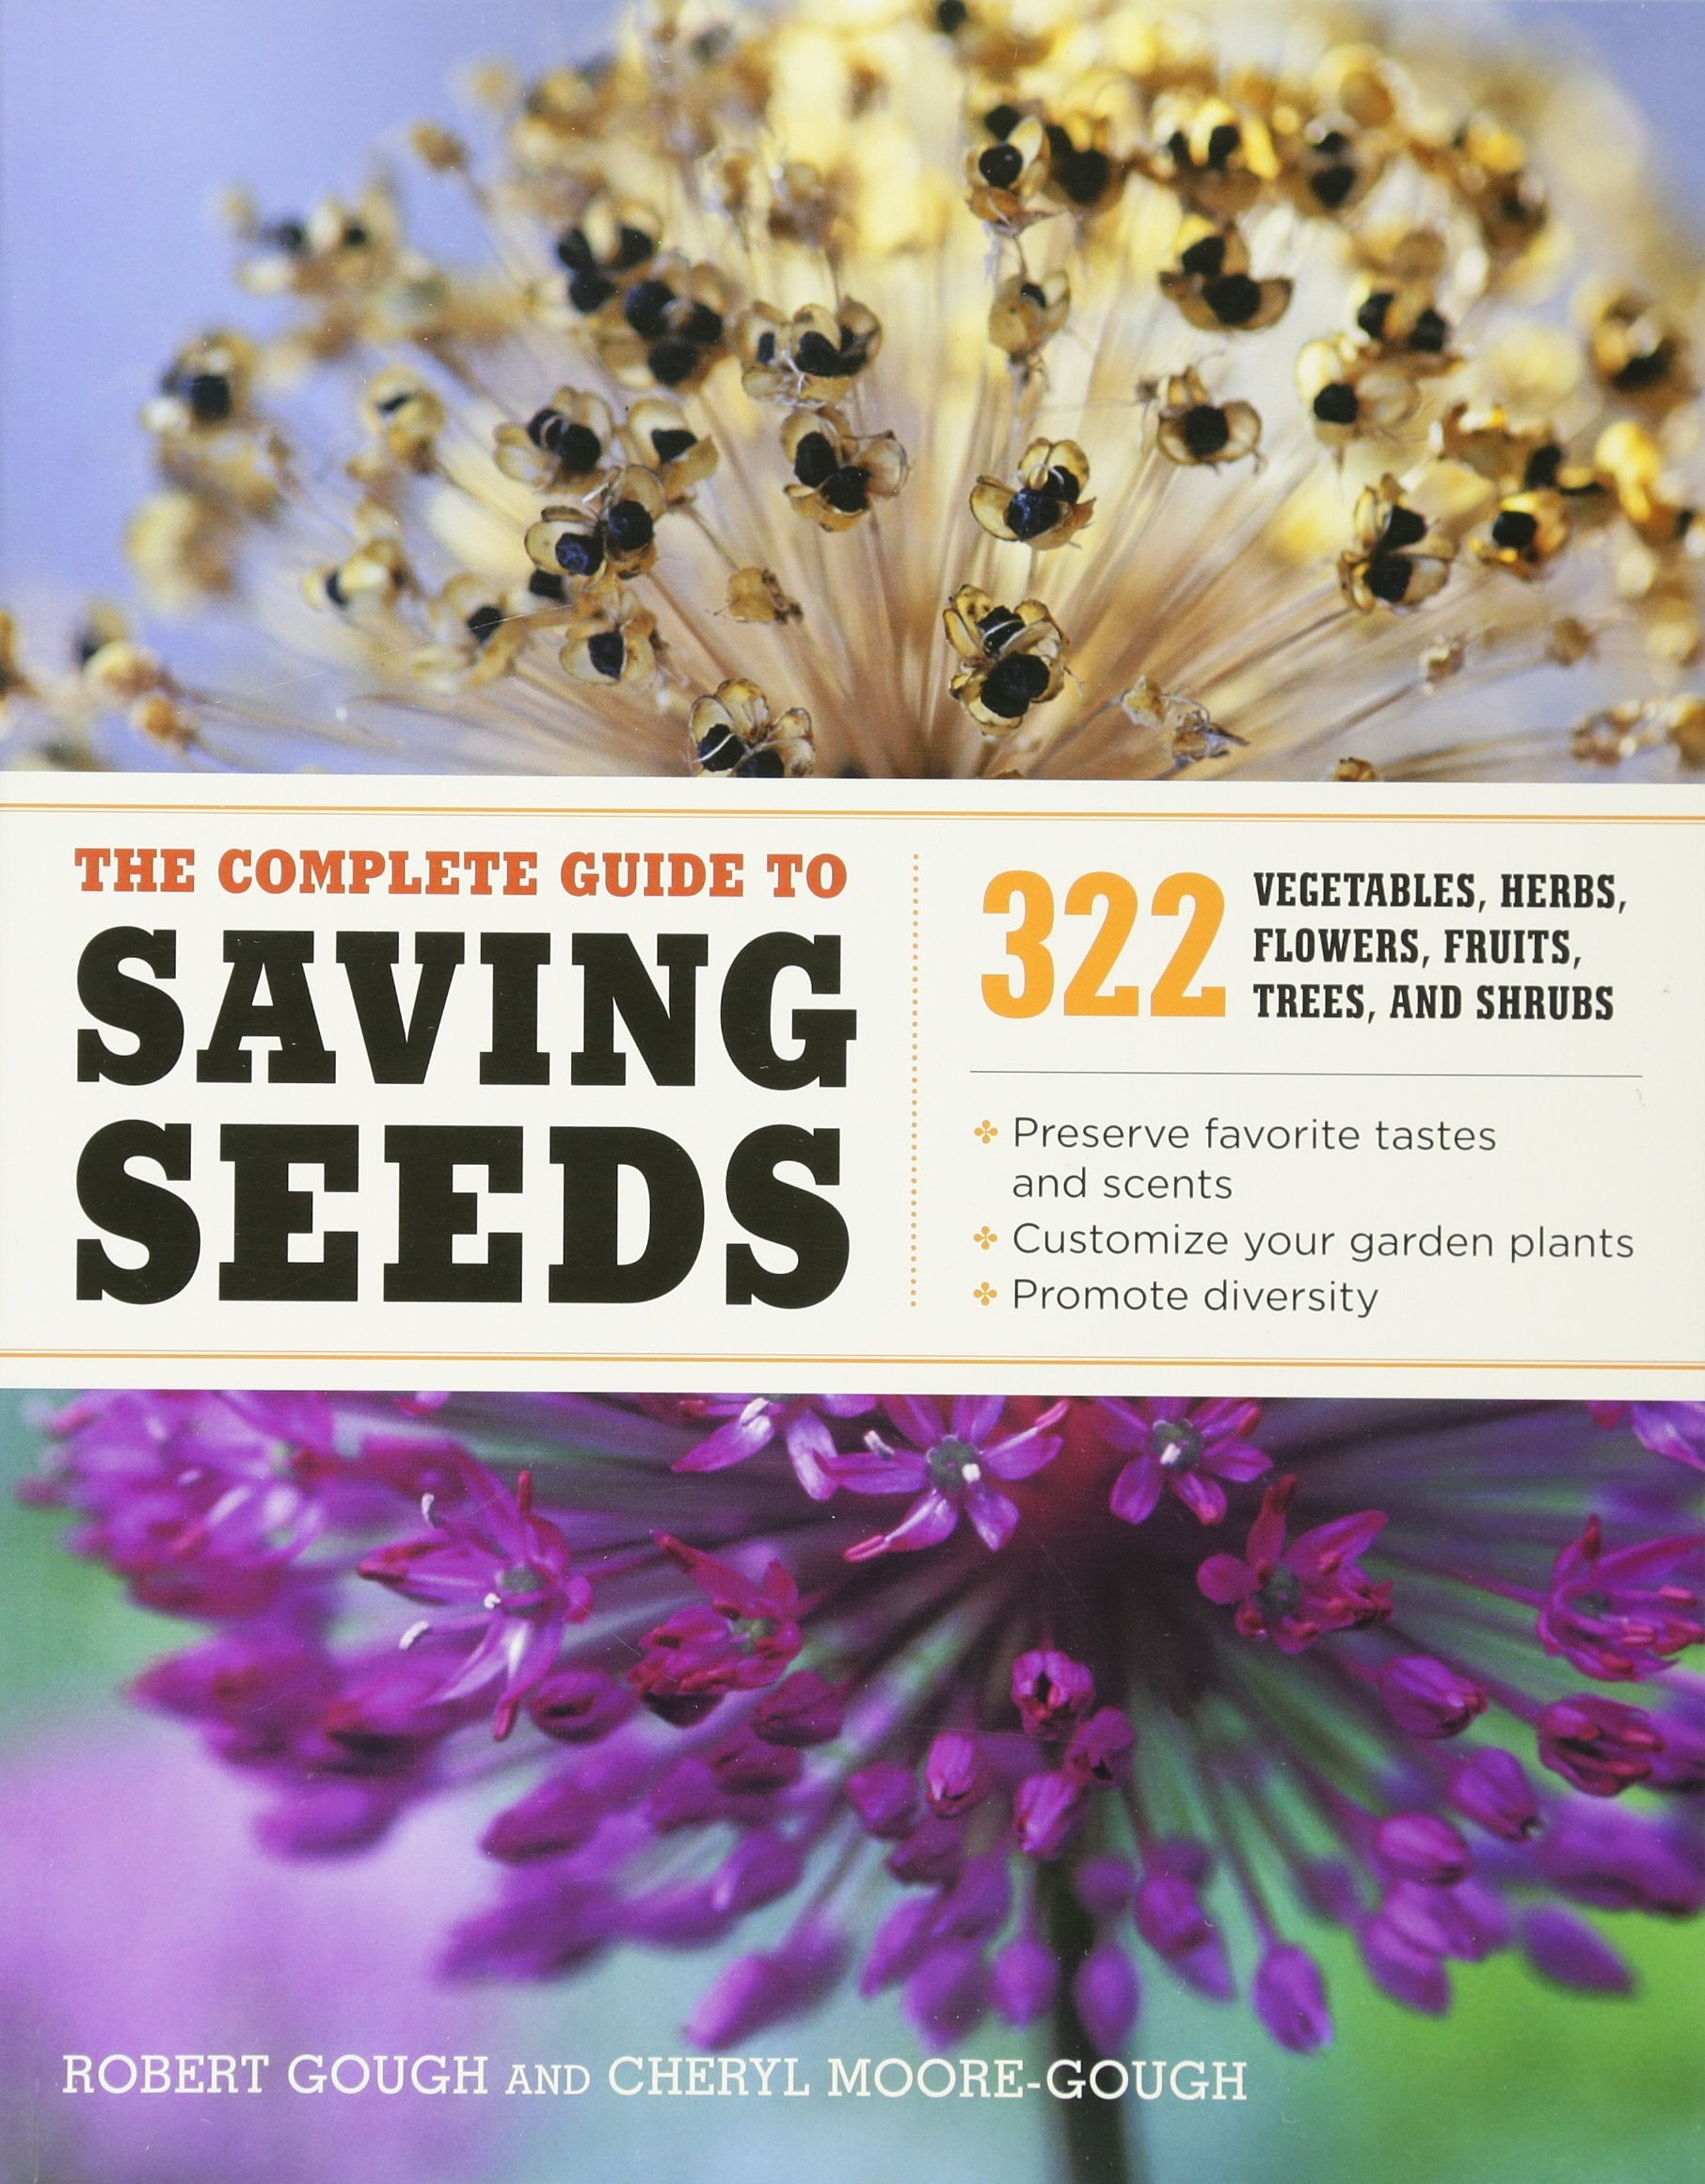 complete guide to saving seeds.jpg